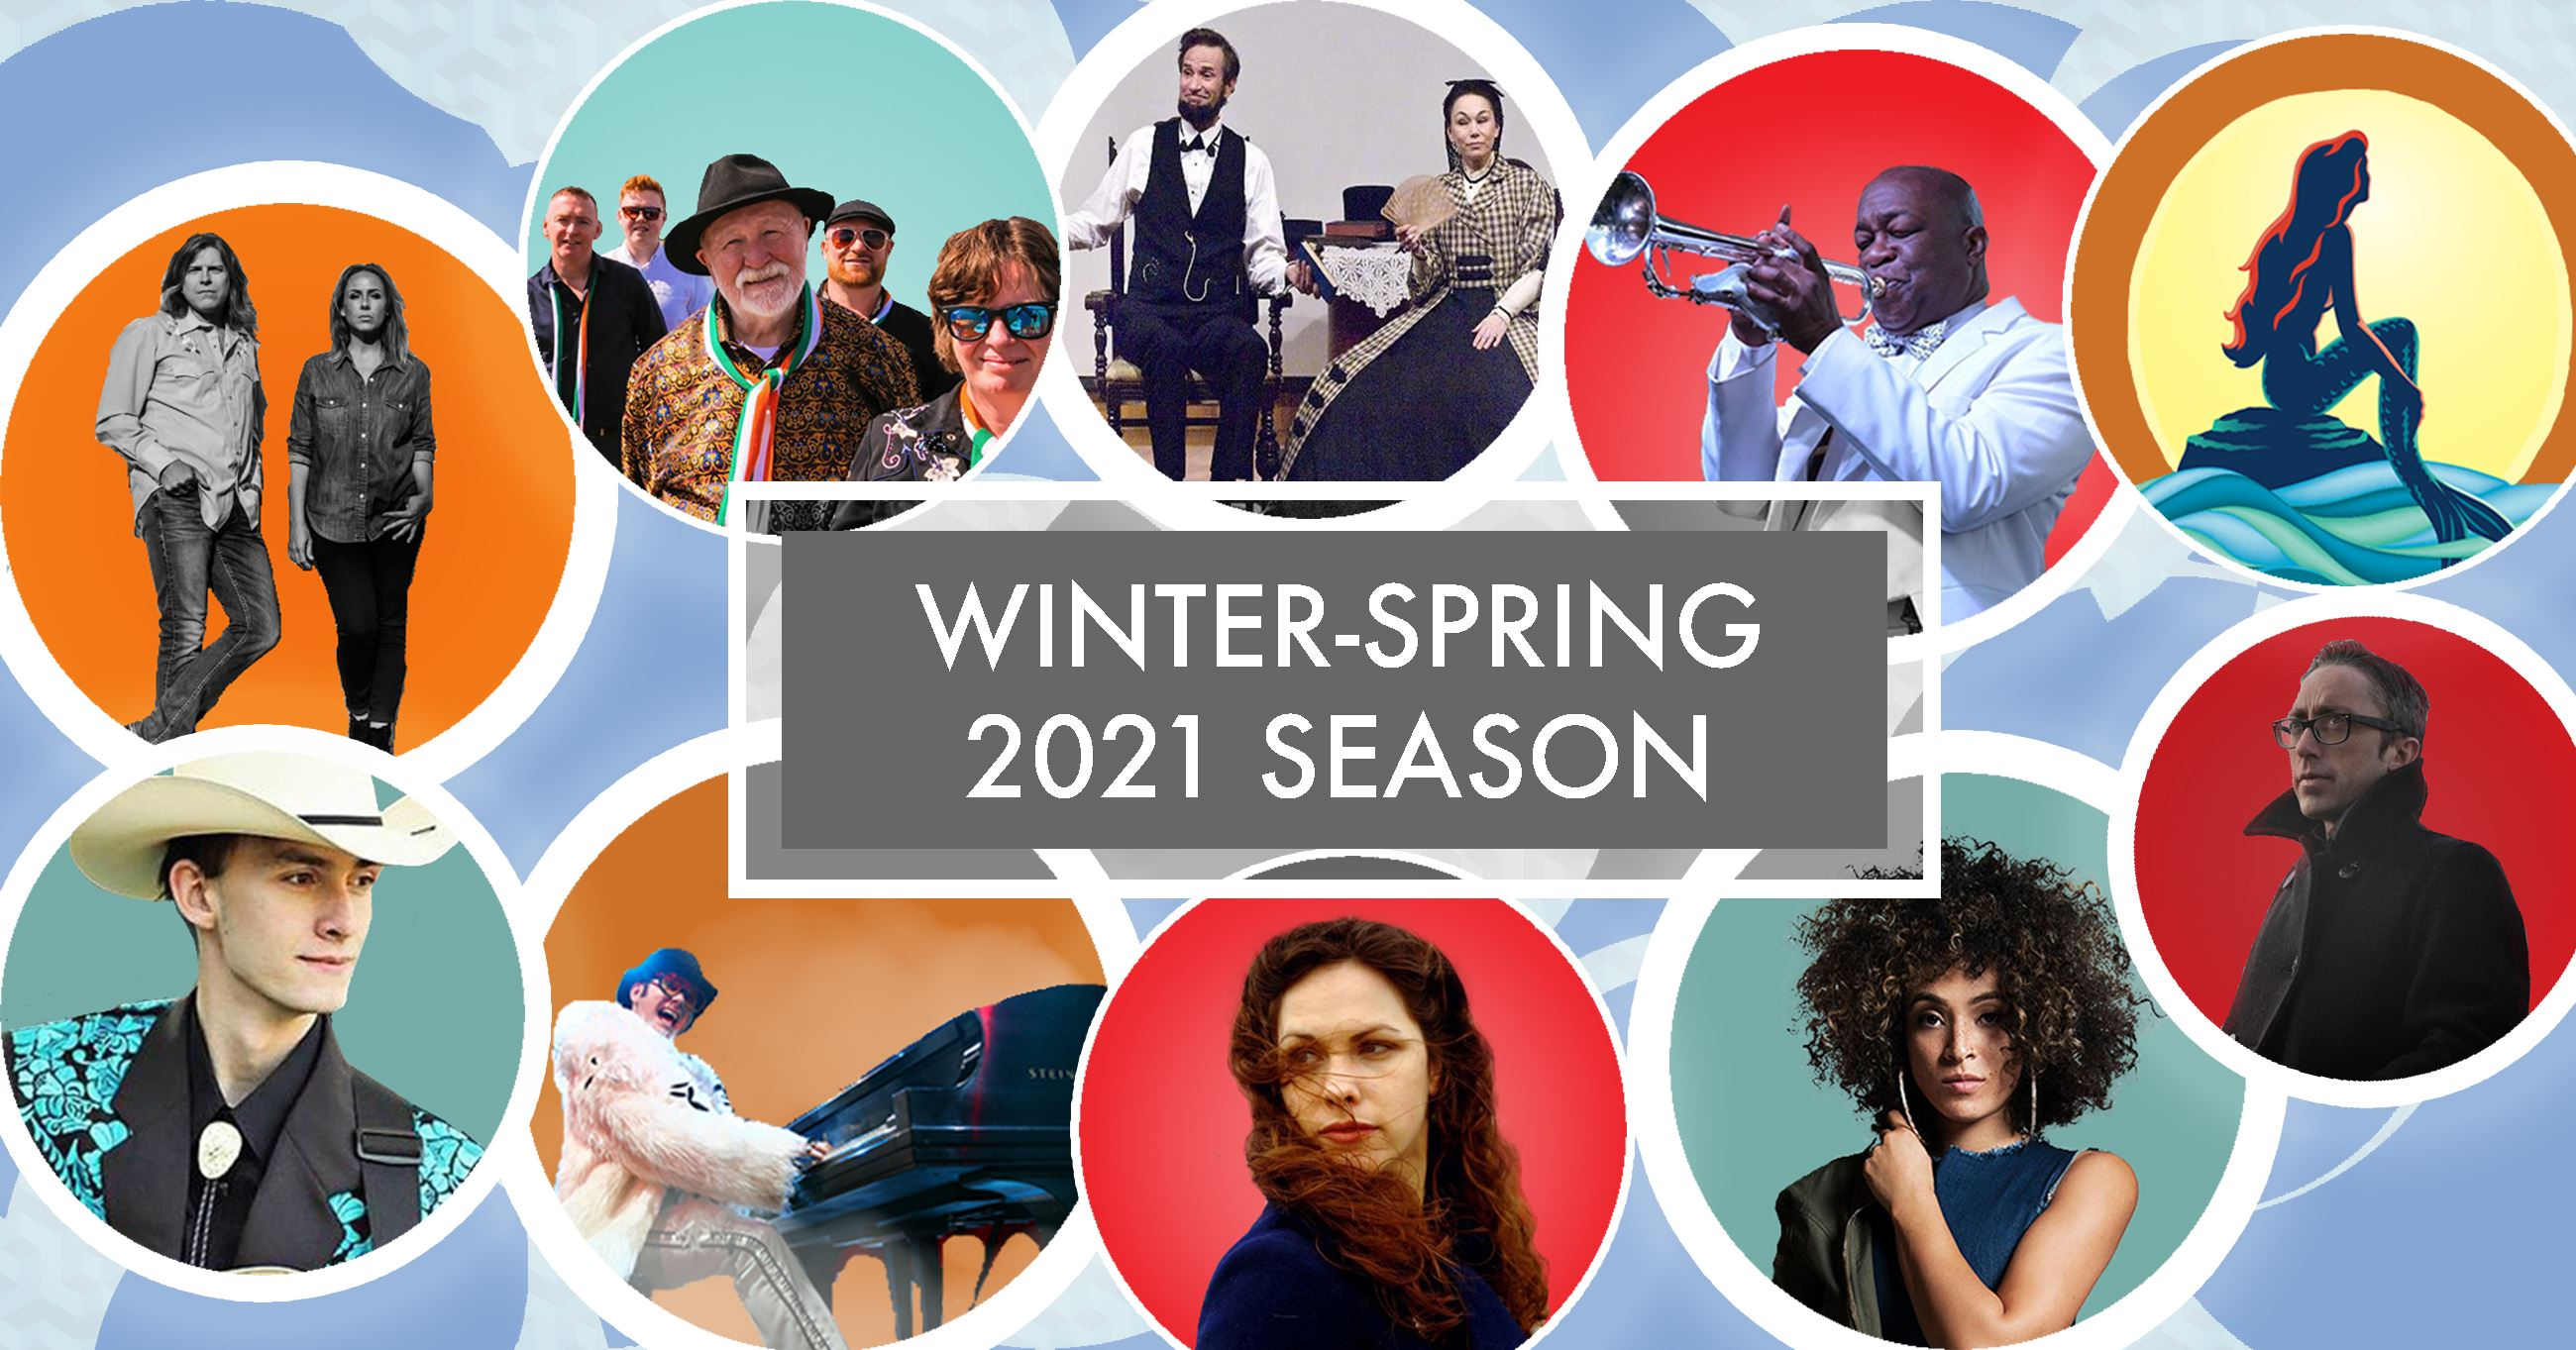 winter-spring 2021 season revised as of 1 14 21